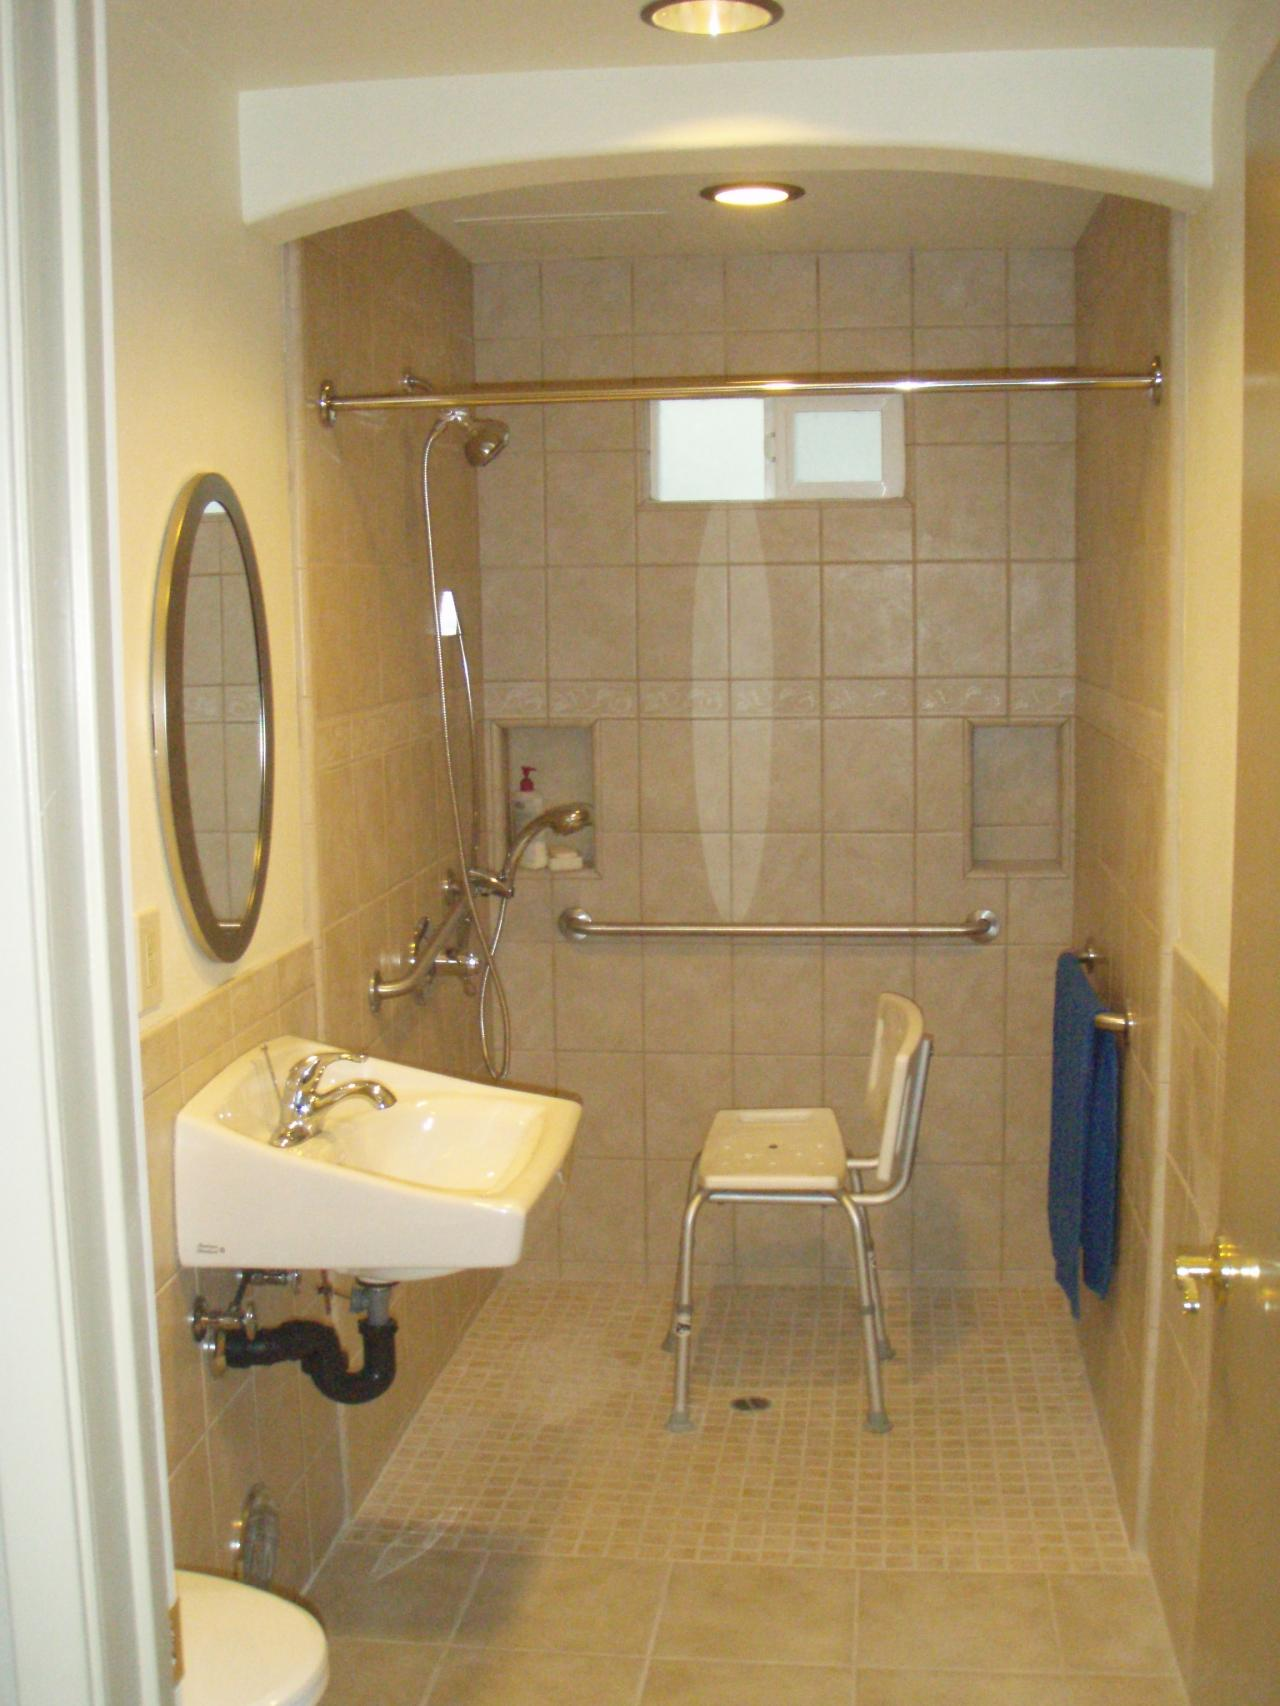 Bathroom designs for handicapped specs price release for Bathroom design sites